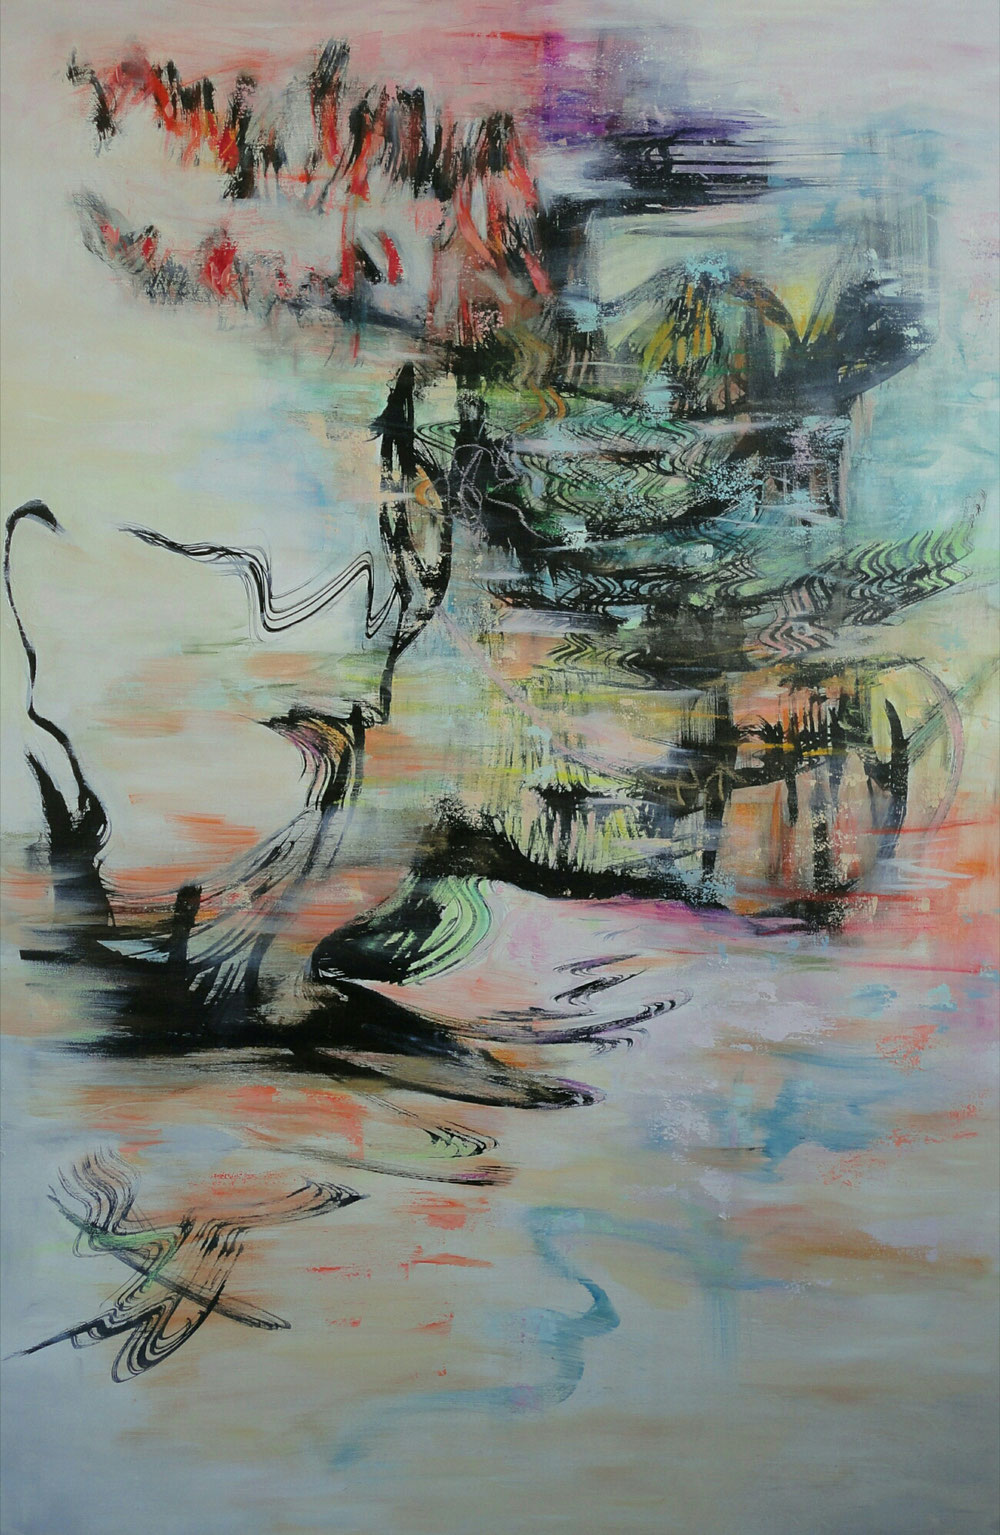 Kingdom of the Dragonfly, 120 x 80, mixed media on canvas / private collection